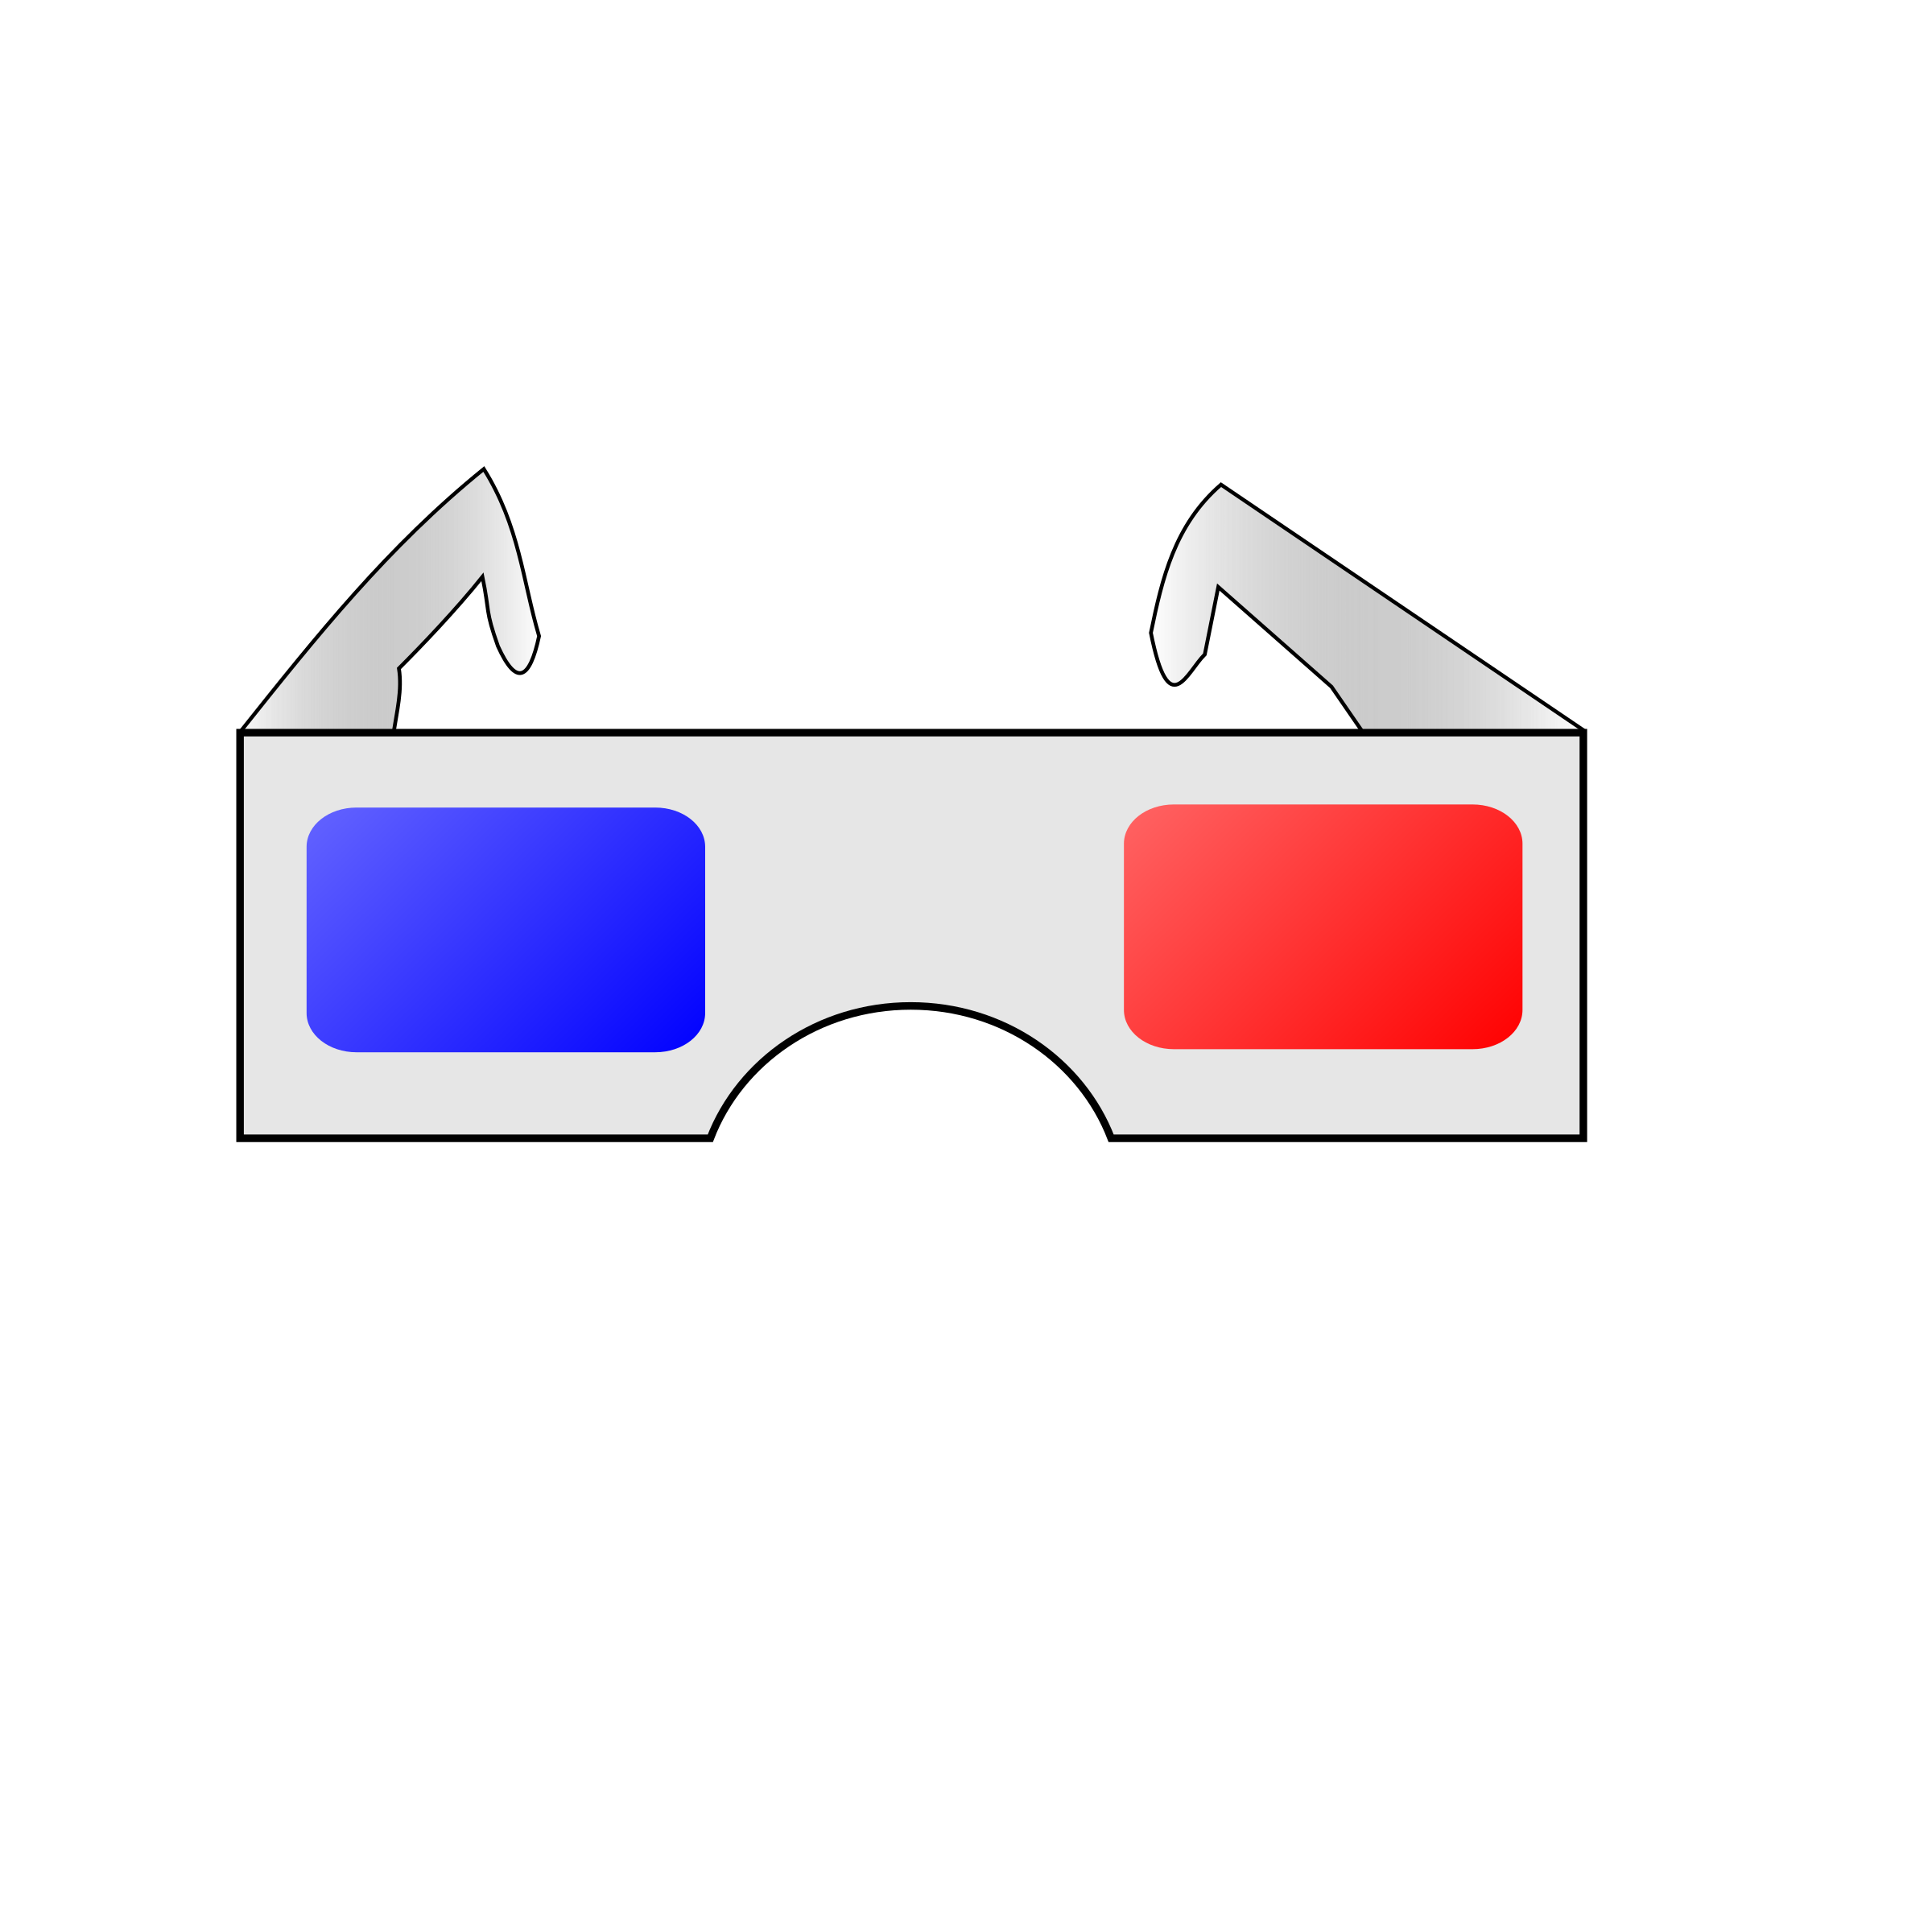 3d glasses png. D icons free